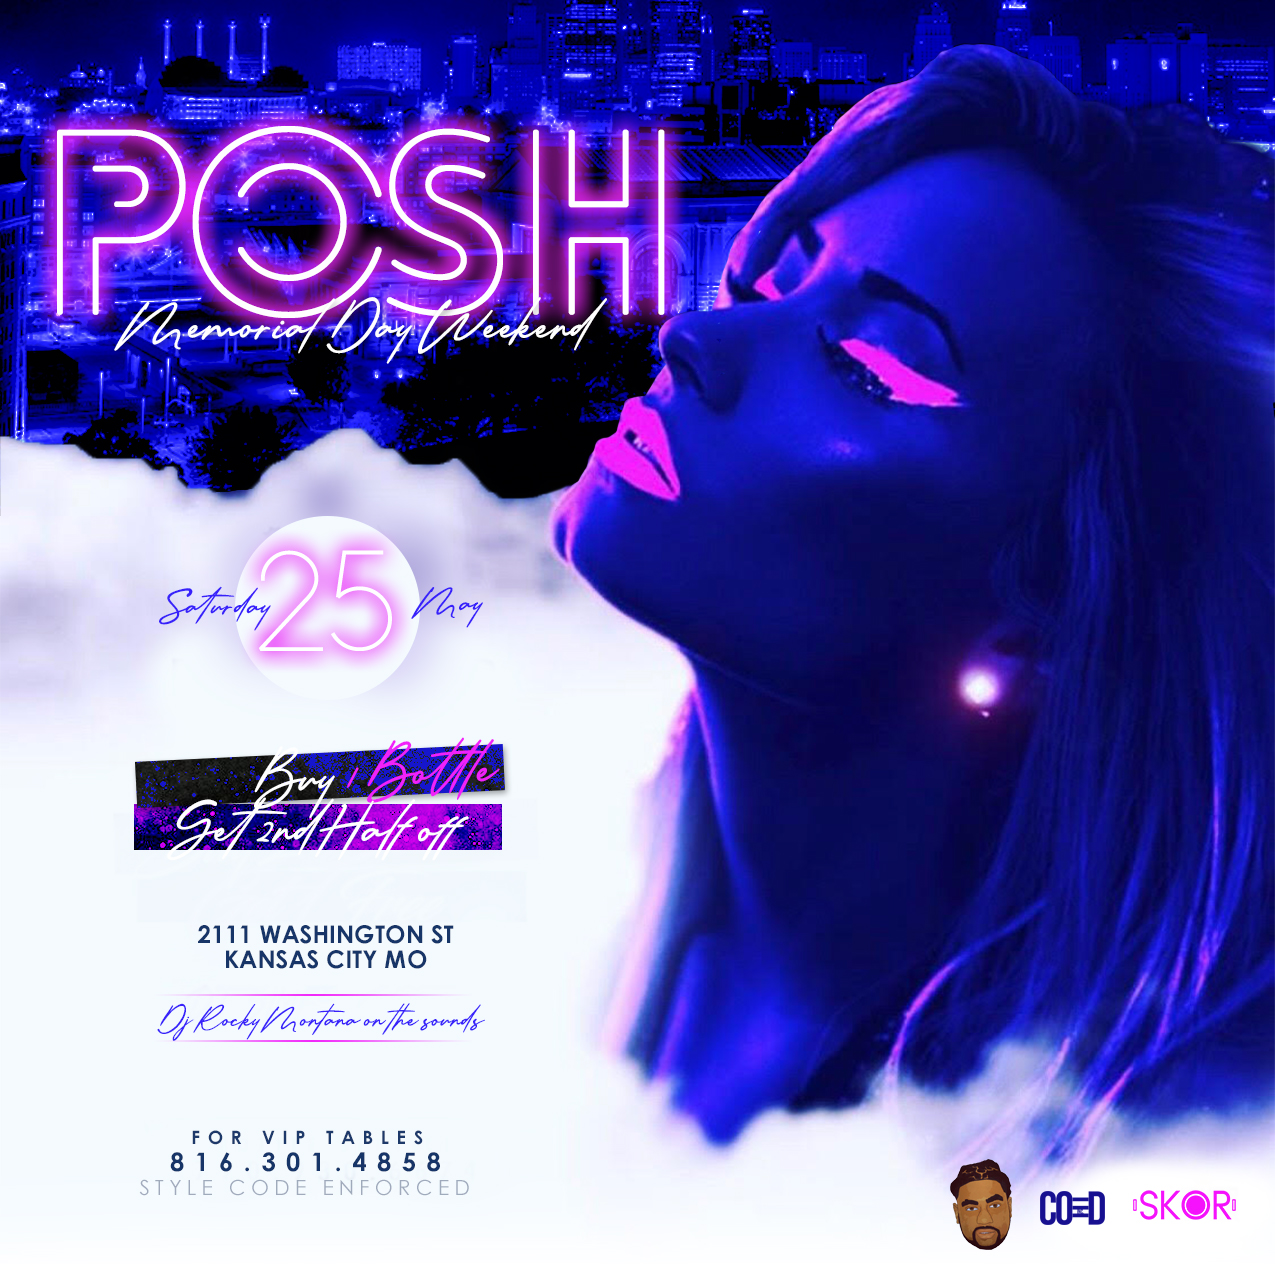 Rhythm-Booze-Club-Posh-5-25-Memorial Weekend djrocky